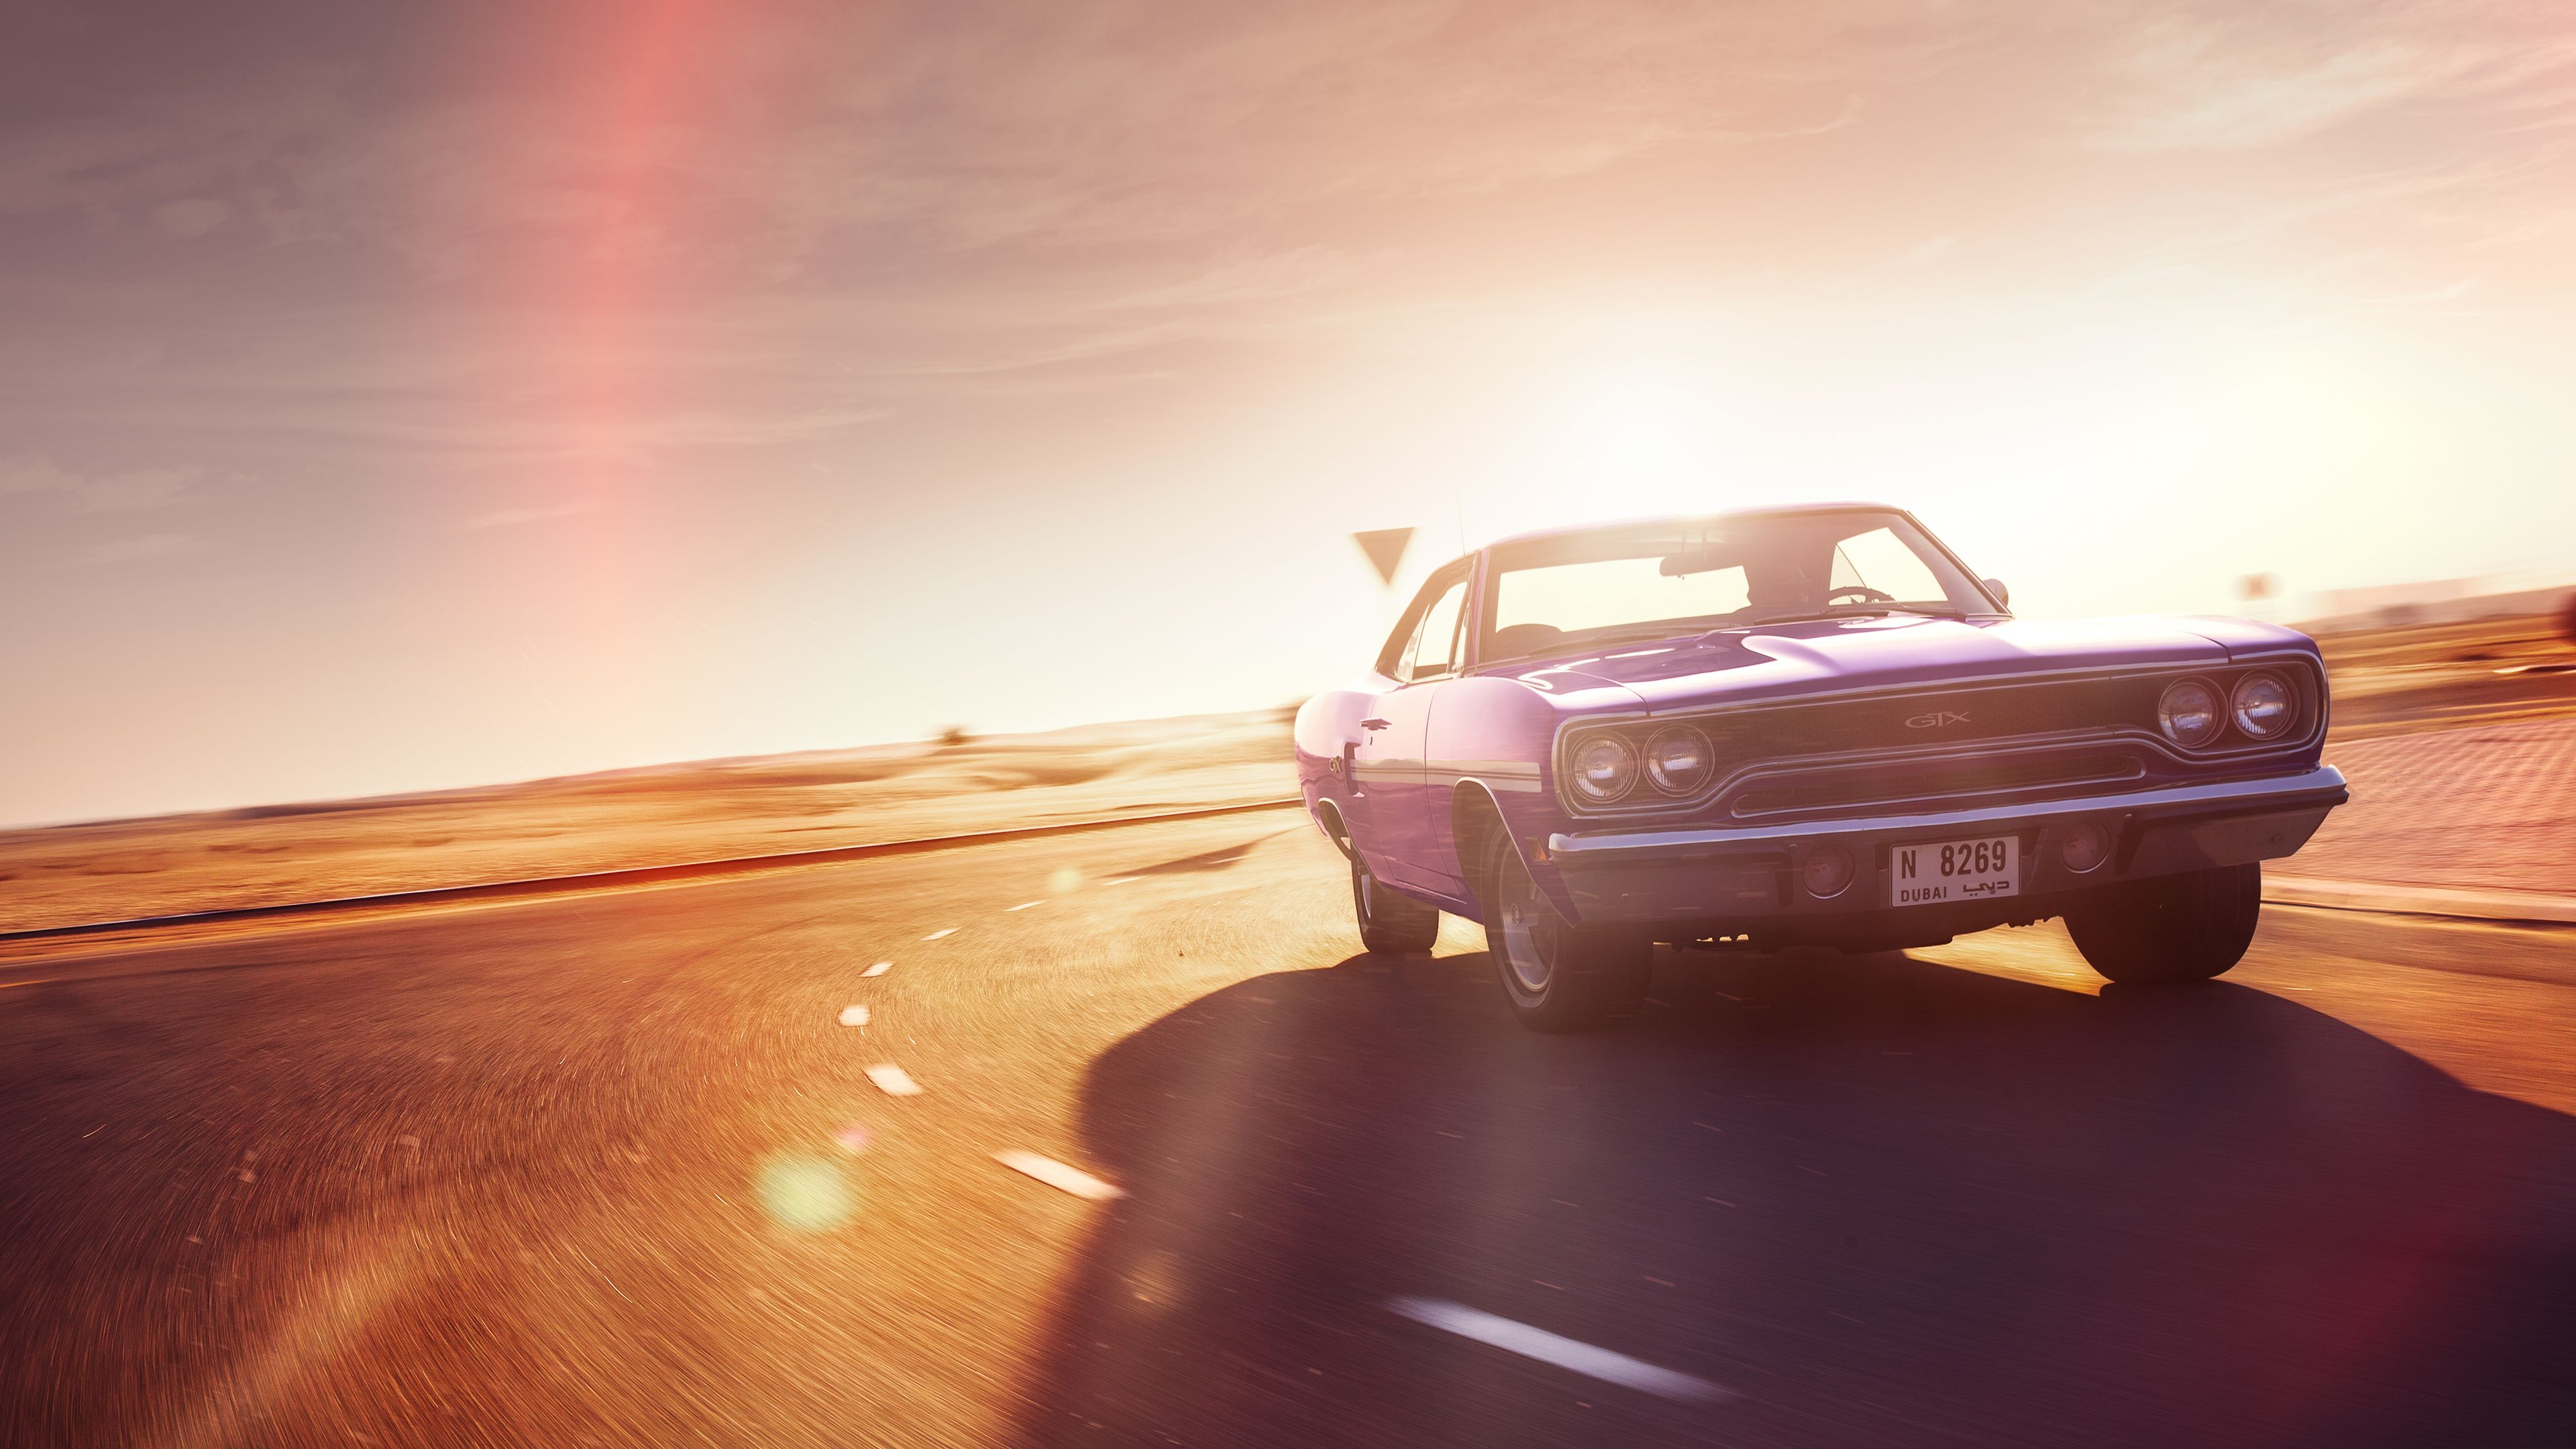 1970 Plymouth Gtx 4k Hd Wallpapers Cars Wallpapers Behance Wallpapers Artist Wallpapers 4k Wallpapers Plymouth Gtx 1970 Plymouth Gtx Car Wallpapers